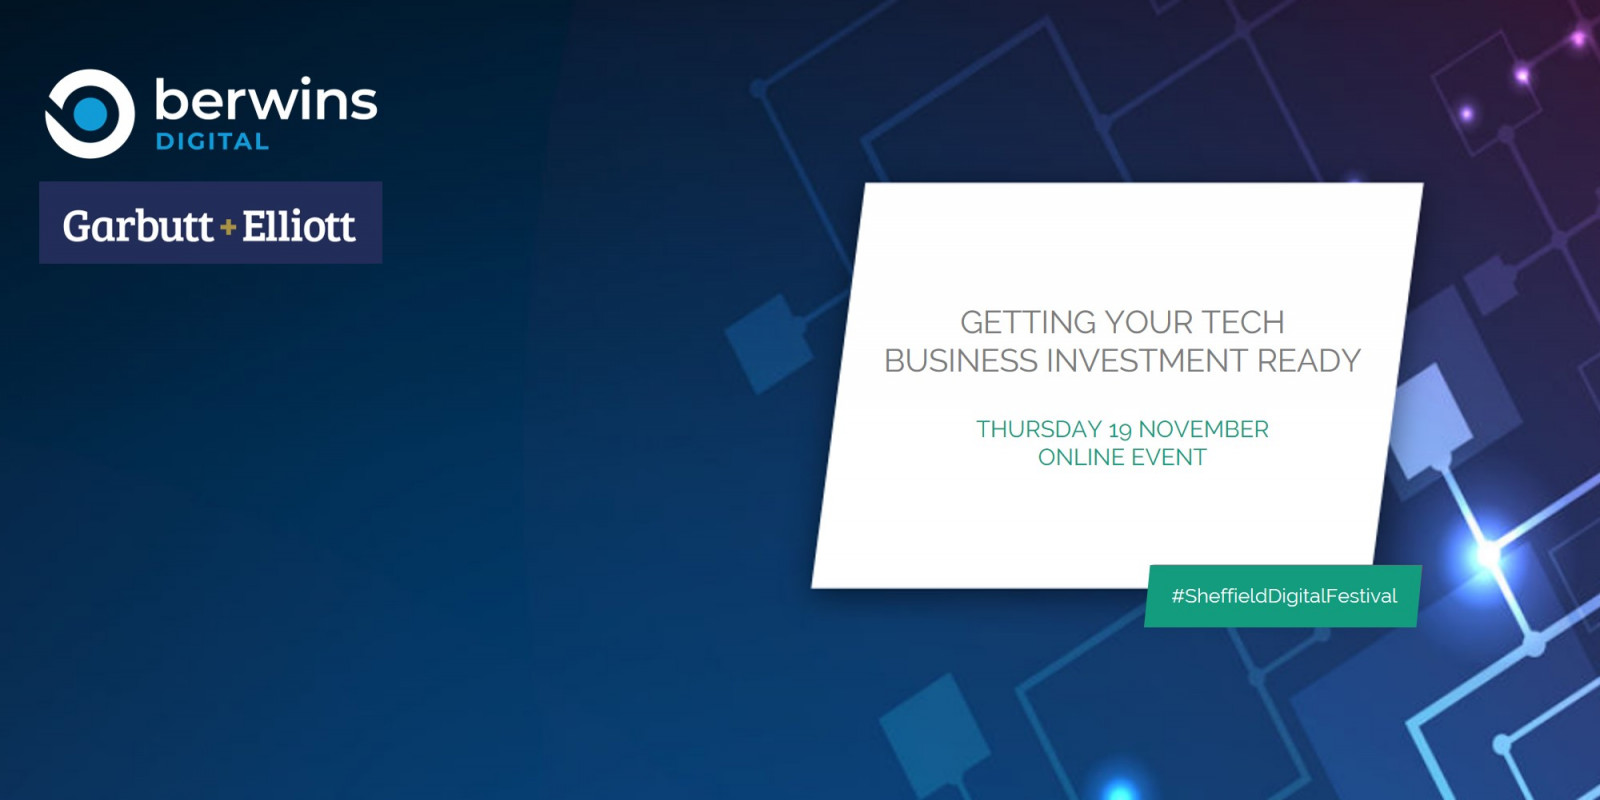 Getting your tech business investment ready - Berwins Digital header image